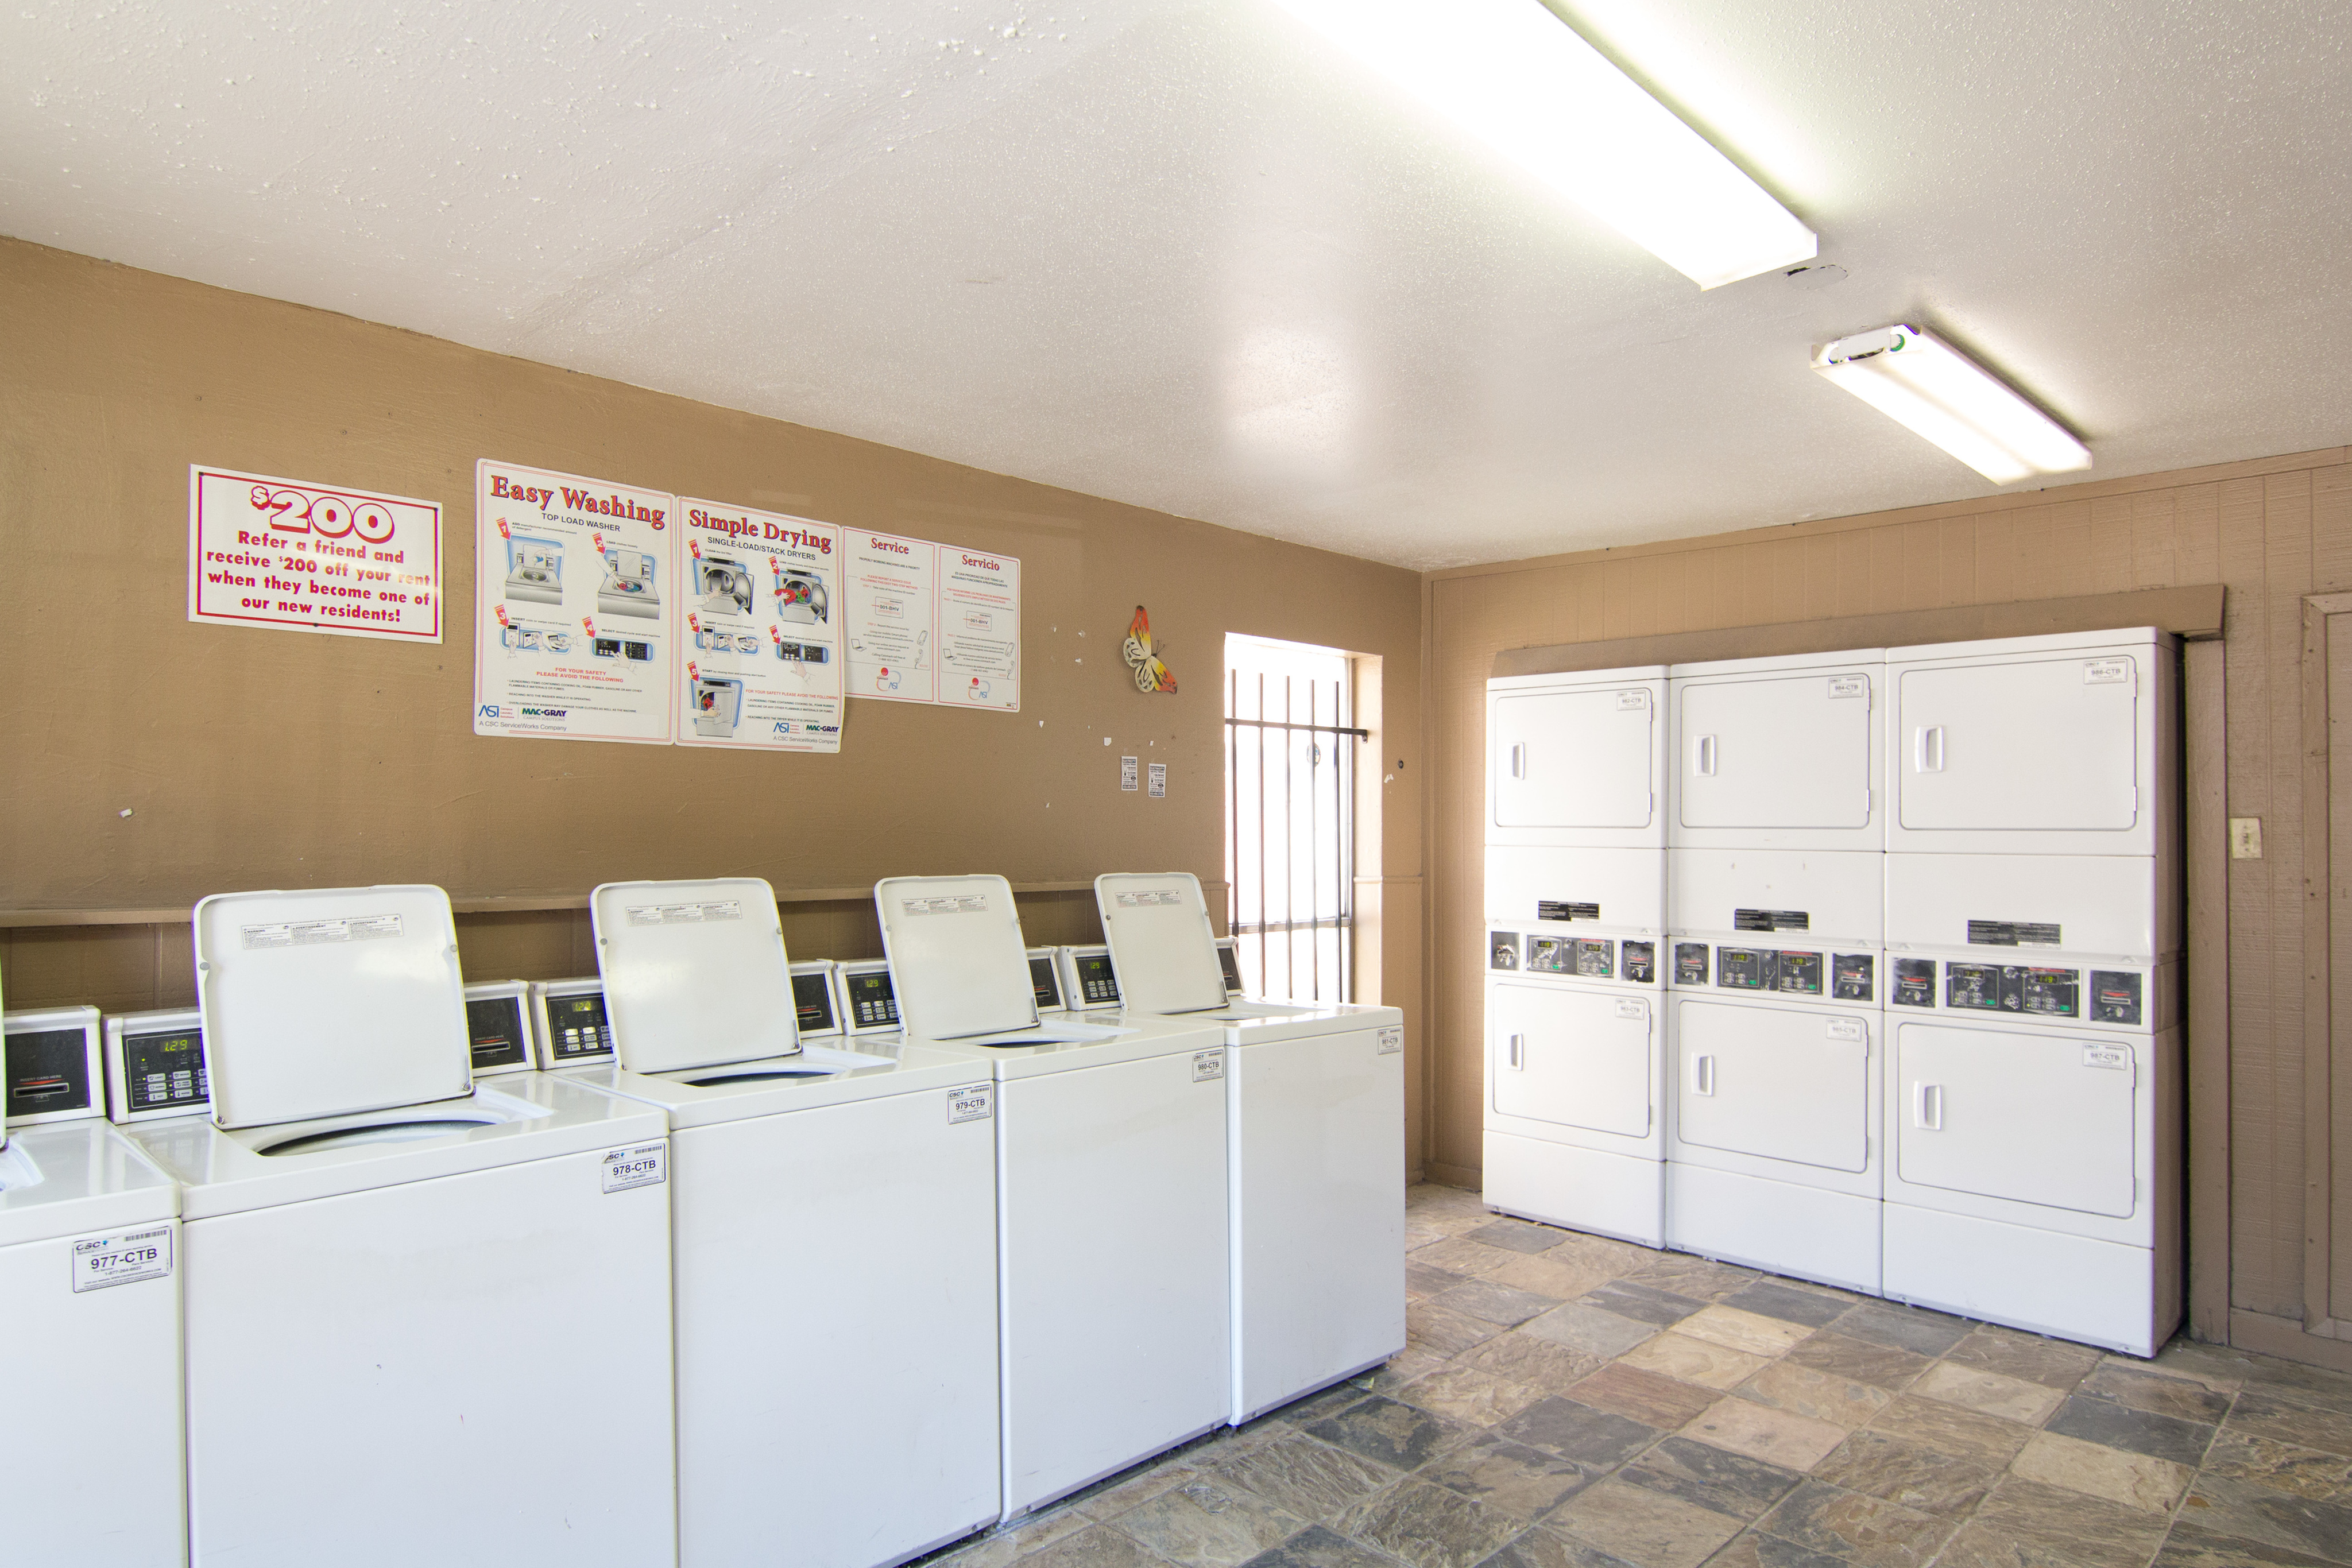 Image of Laundry Facility for Victoria Park